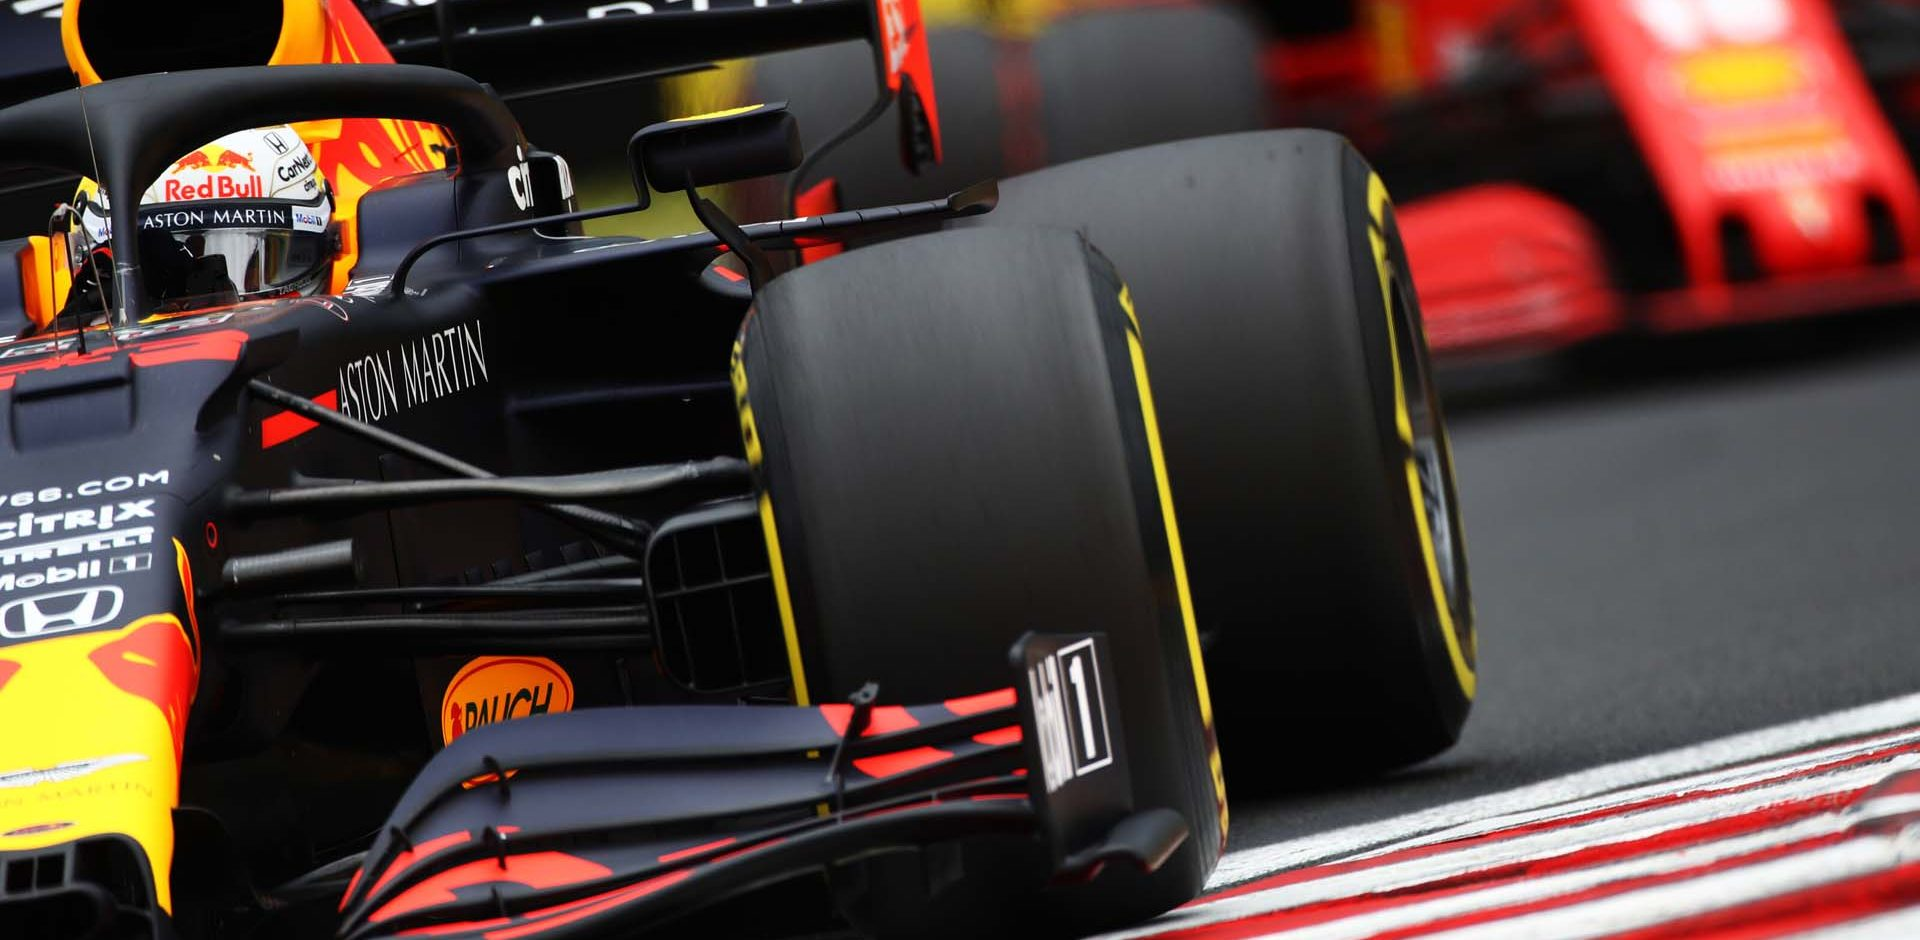 BUDAPEST, HUNGARY - JULY 18: Max Verstappen of the Netherlands driving the (33) Aston Martin Red Bull Racing RB16 on track during final practice for the F1 Grand Prix of Hungary at Hungaroring on July 18, 2020 in Budapest, Hungary. (Photo by Mark Thompson/Getty Images) // Getty Images / Red Bull Content Pool  // AP-24NTXQ9FS2111 // Usage for editorial use only // Ferrari Charles Leclerc